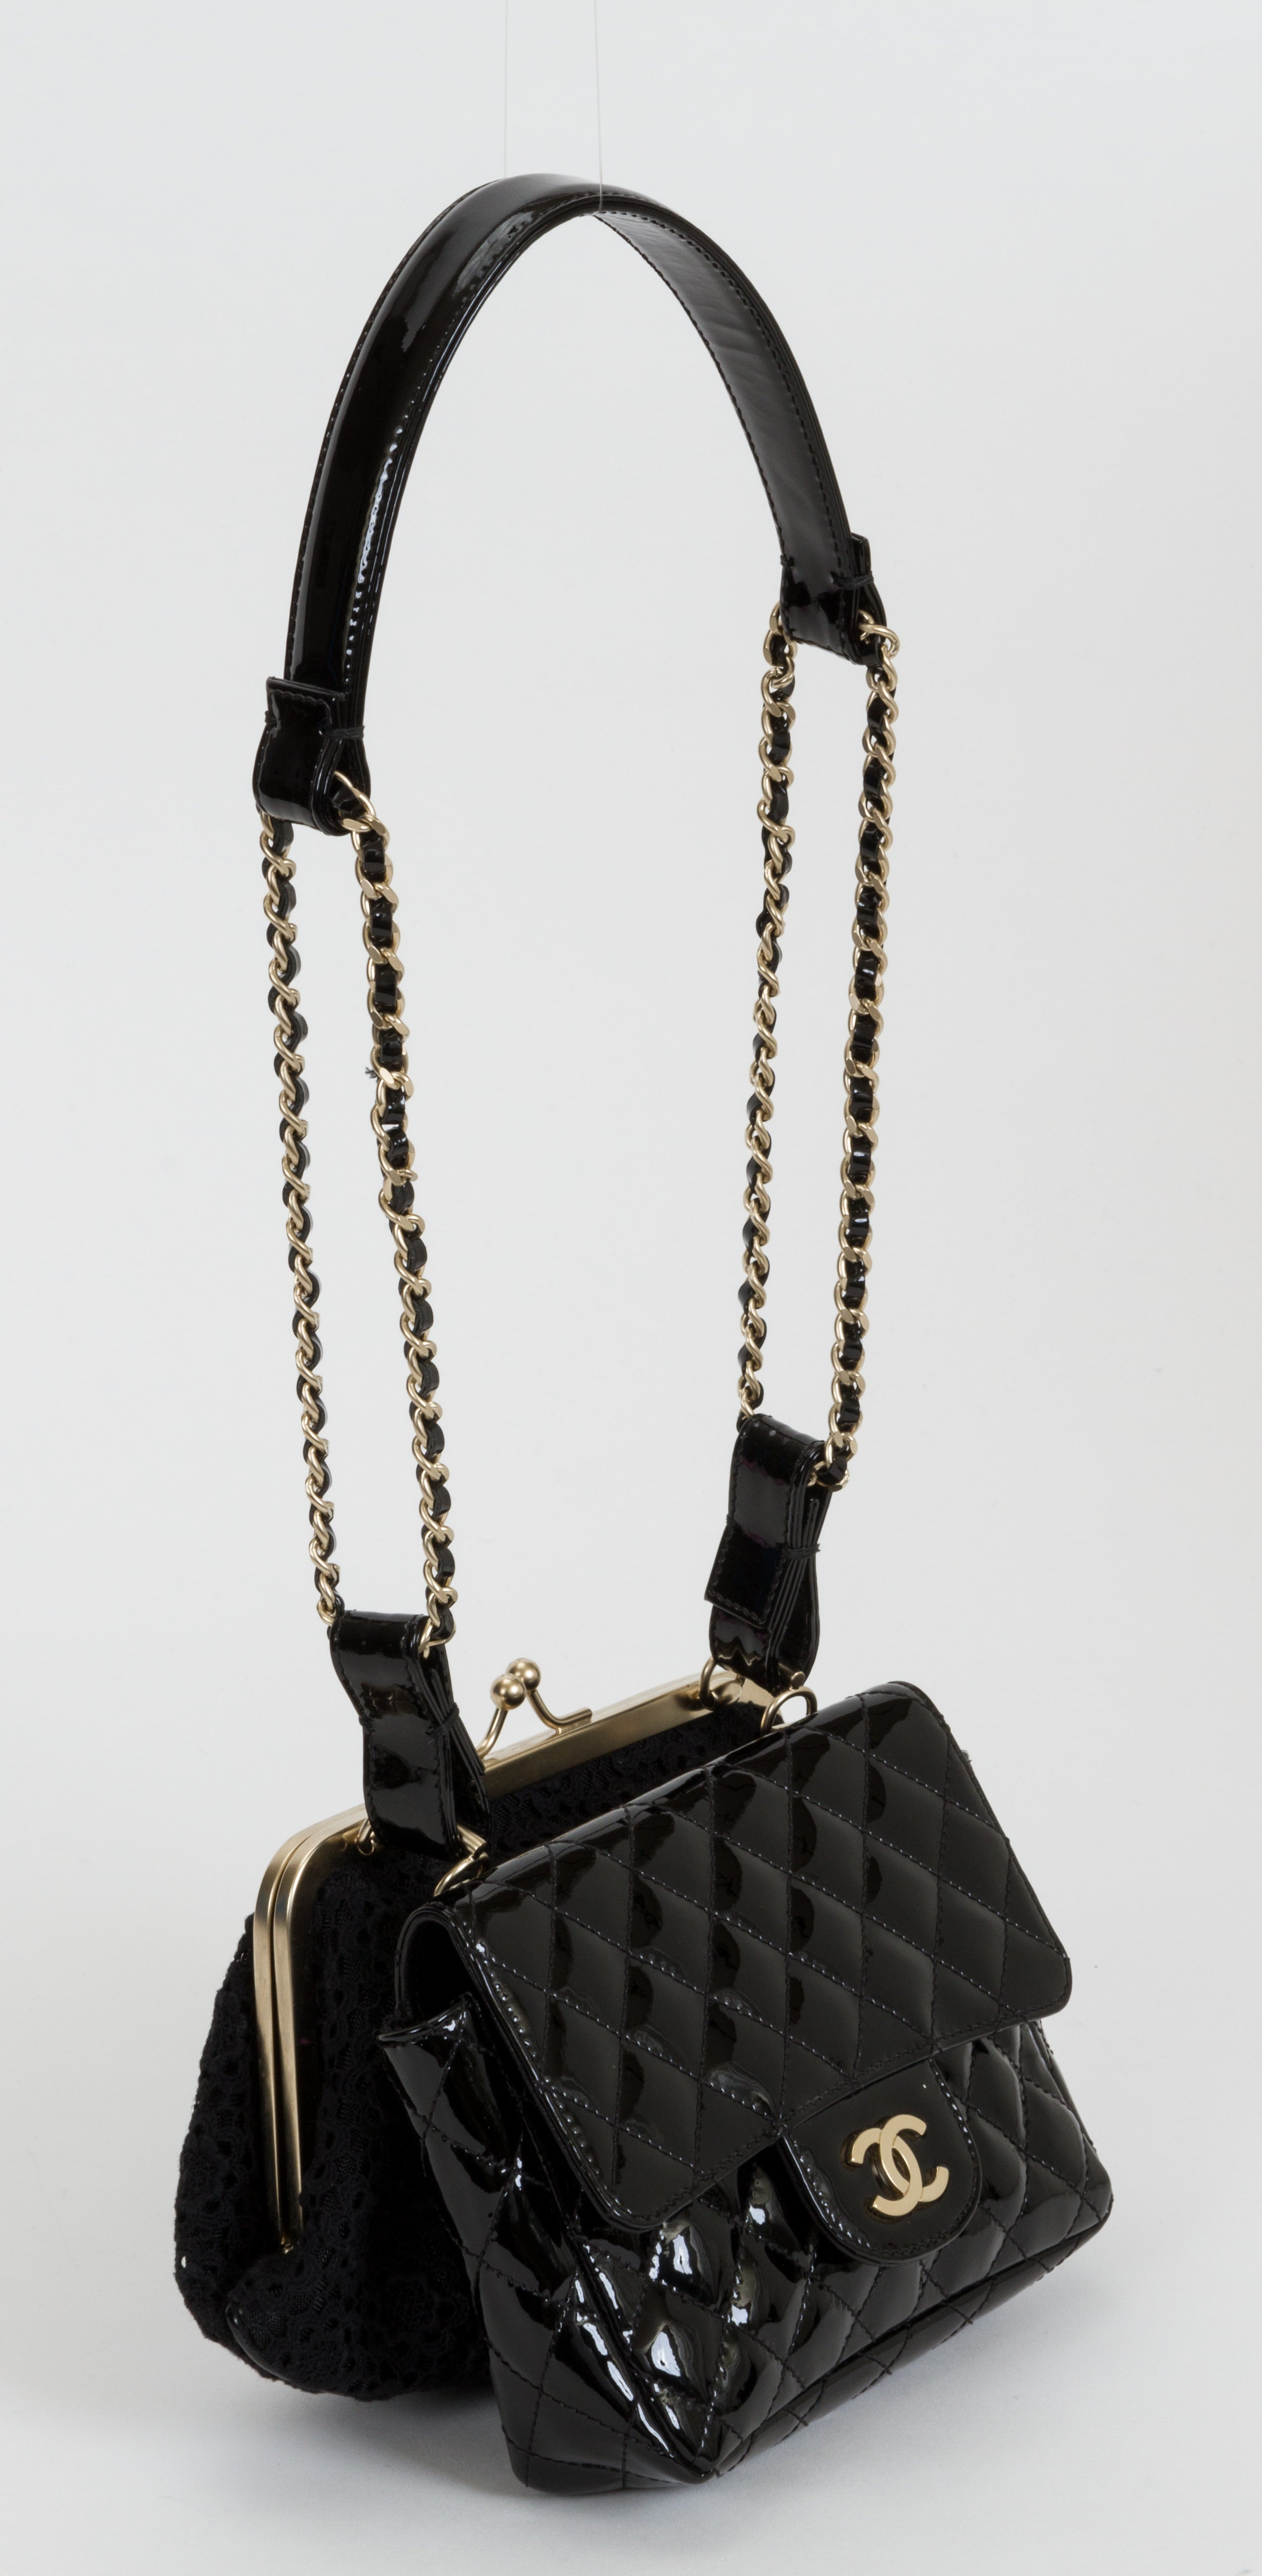 d43426c4d277 Chanel Black Lace and Patent Double Bag at 1stdibs